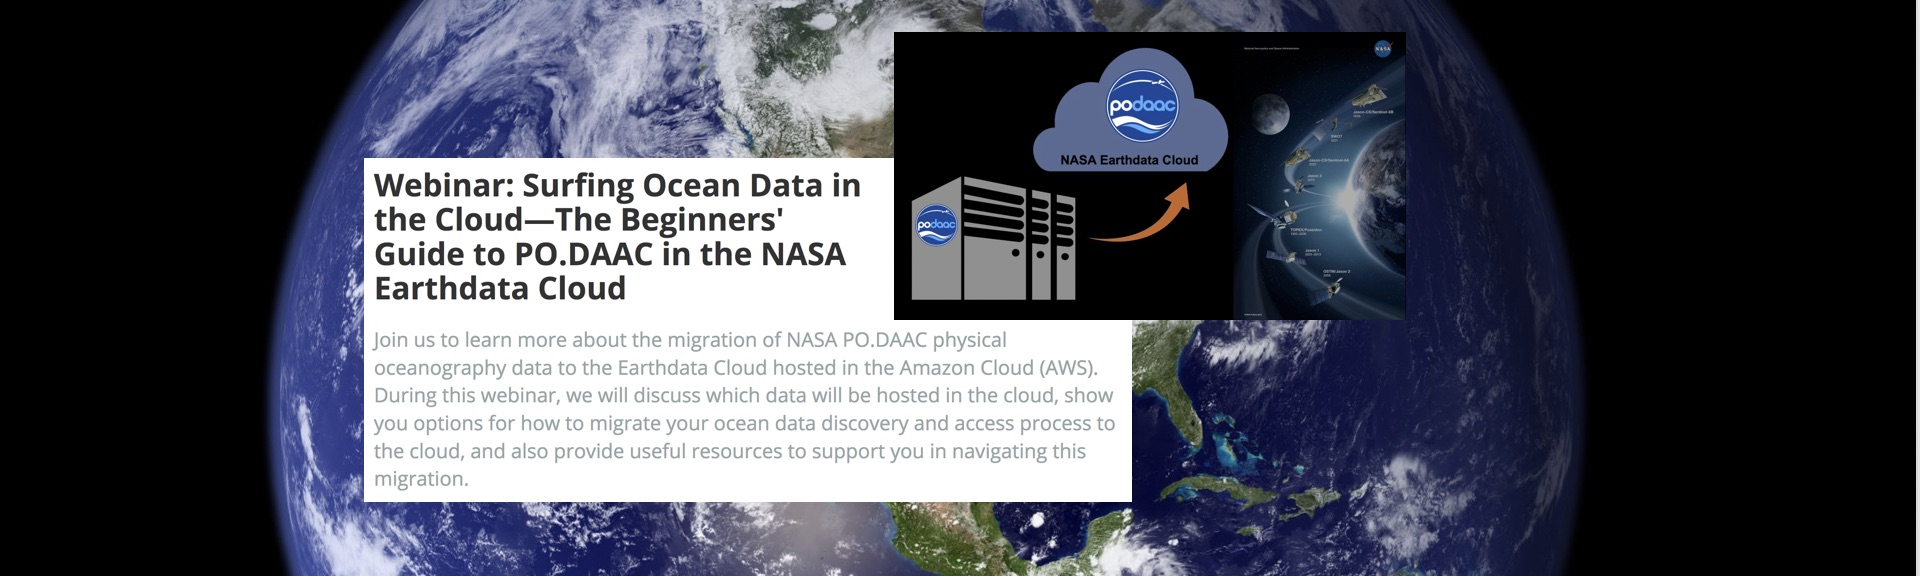 This graphic illustrates information from the upcoming PO.DAAC Cloud Migration Webinar hosted by Earthdata